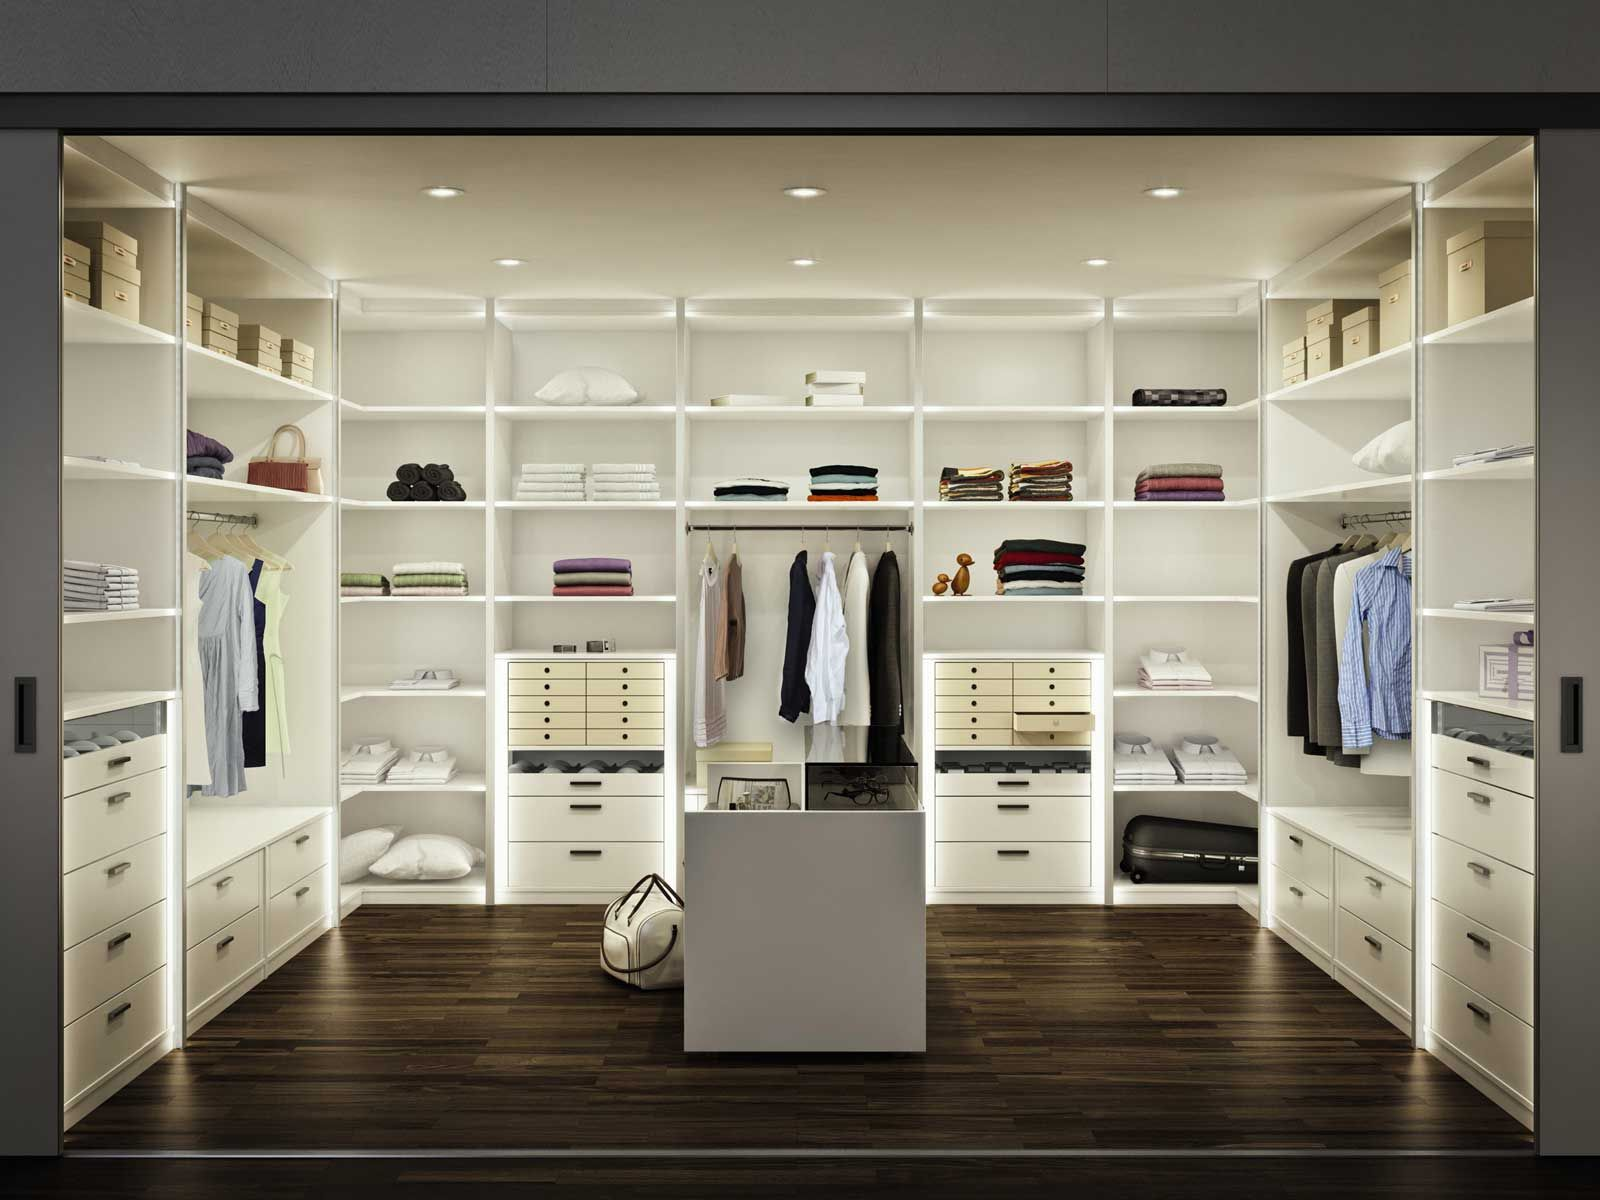 Closet ideas Walk in wardrobe designs Browse through the gallery of stunning closet ideas and walk in wardrobe designs and be inspired to create your